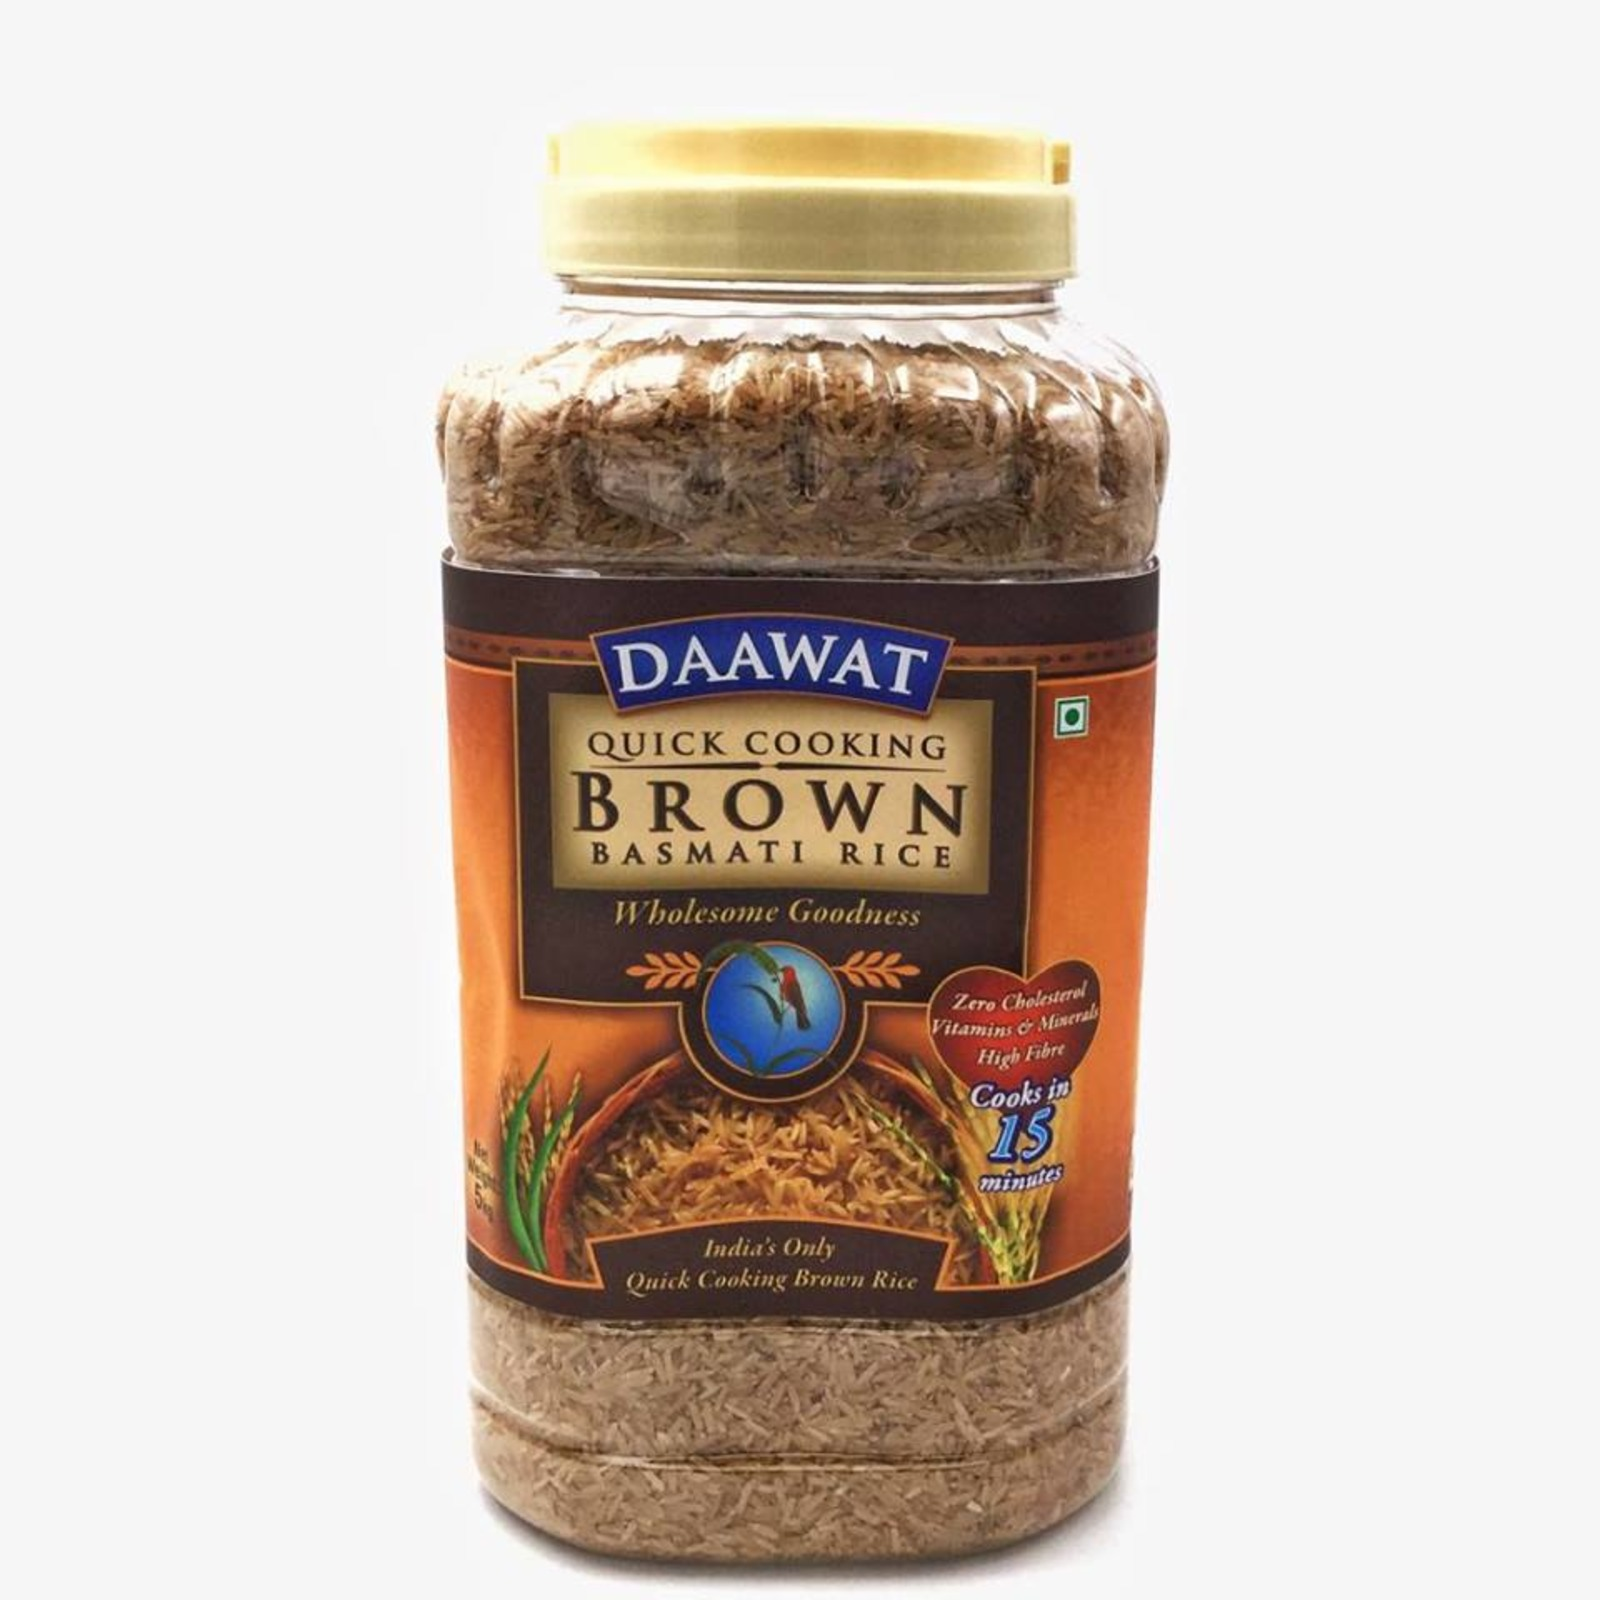 Daawat - Brown Basmati Rice